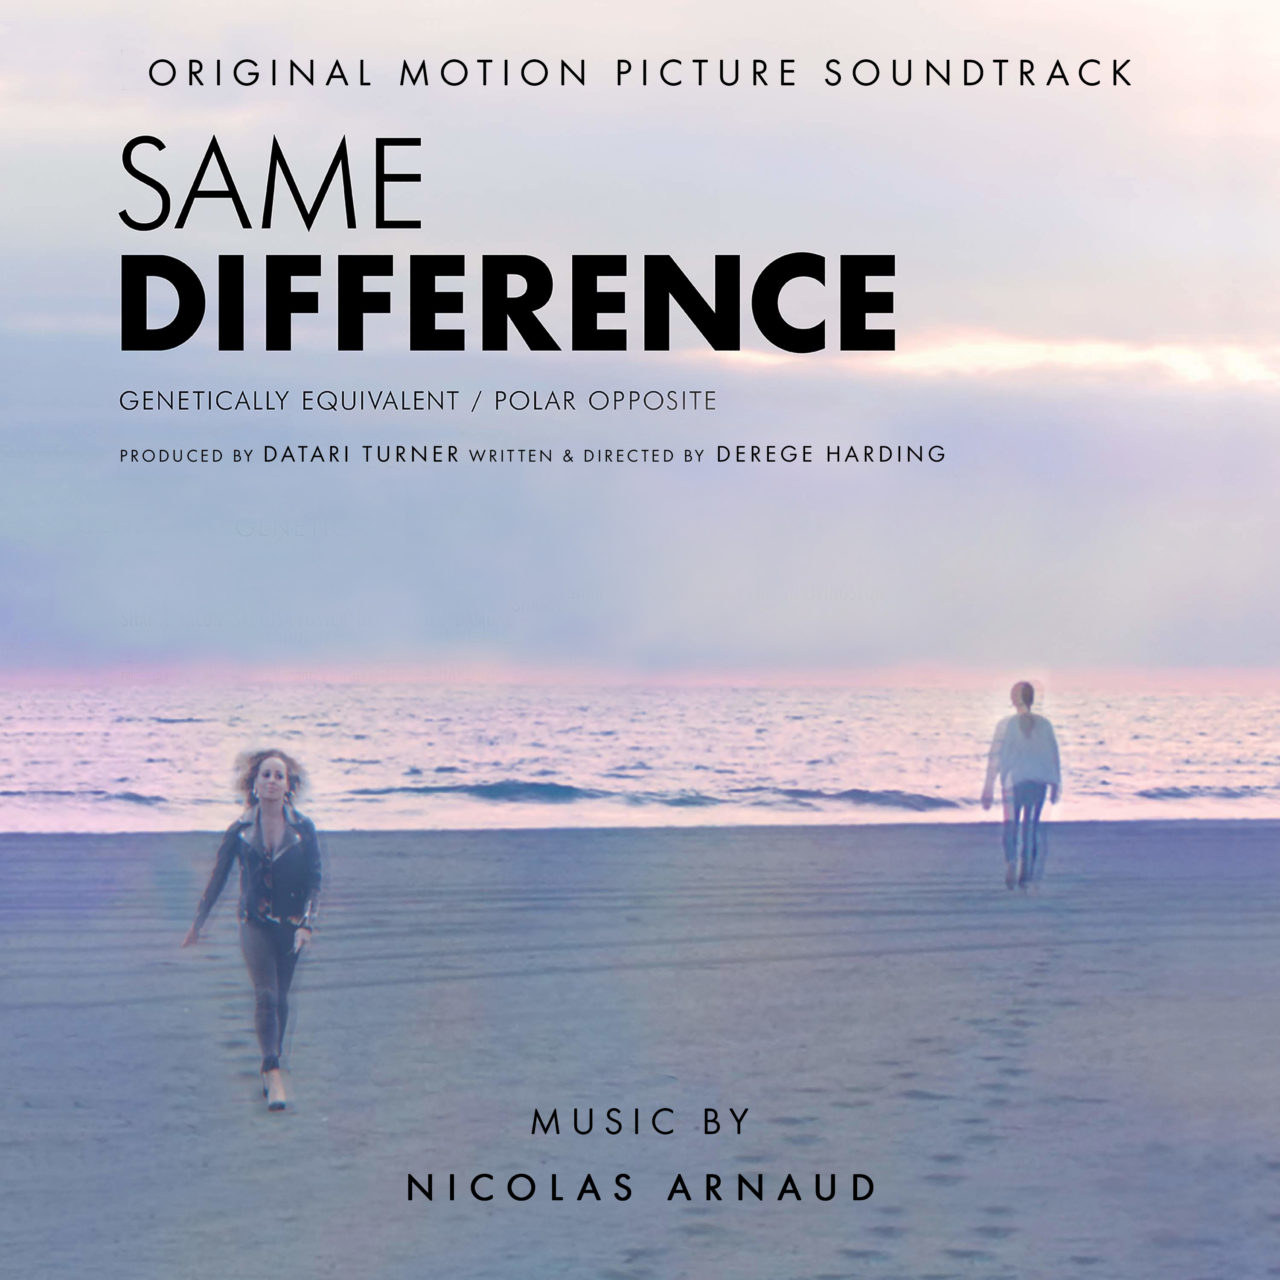 Same-Difference-Original-Score-artwork